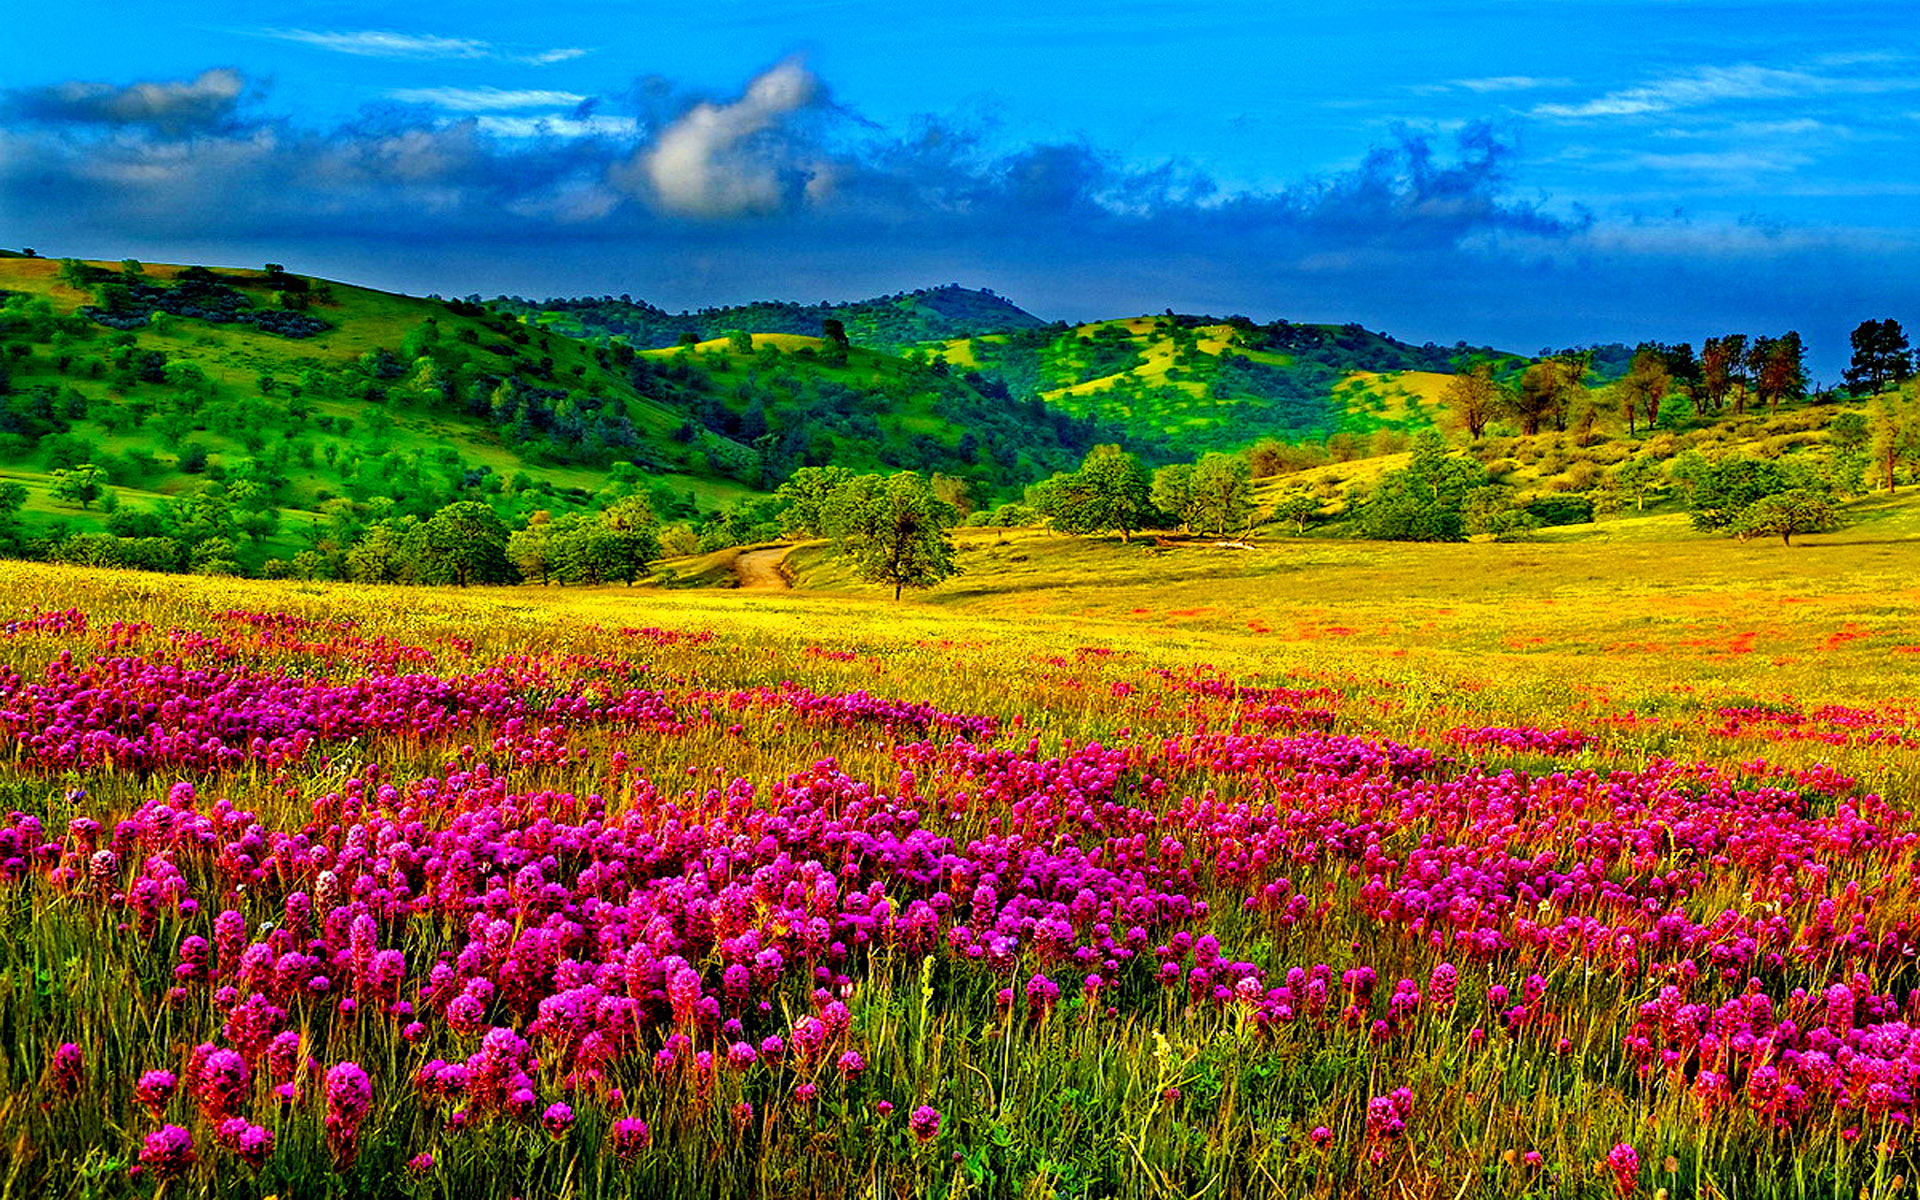 Hd Wallpapers Butterflies Widescreen Meadow With Purple Flowers Hills With Trees And Green